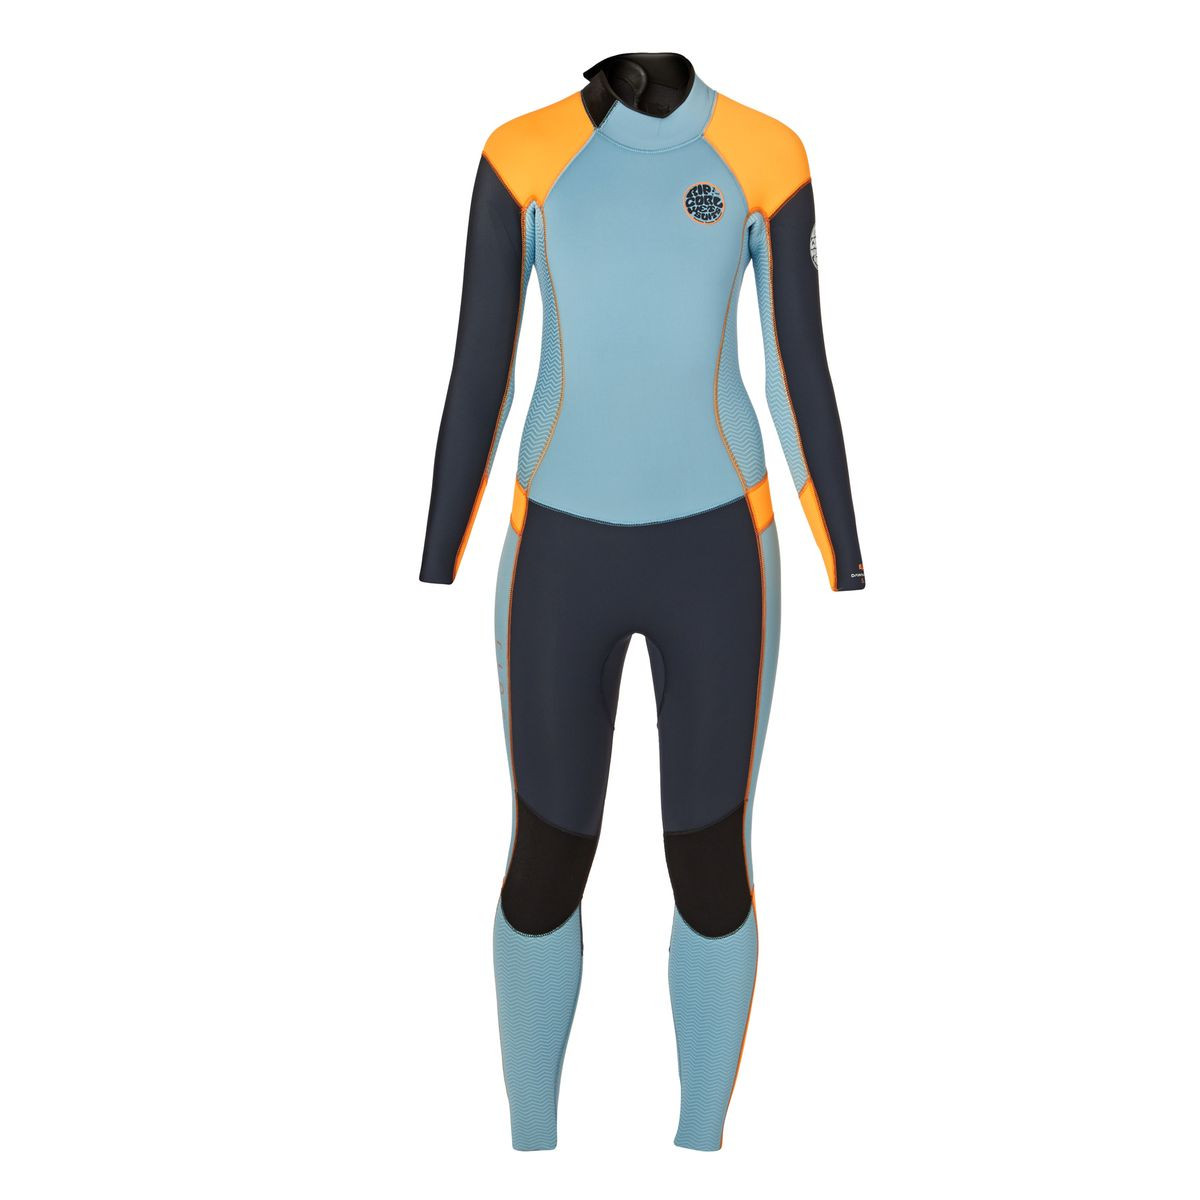 Rip Curl Womens Dawn Patrol 5/3mm 2017 Back Zip Wetsuit - Slate/ Orange